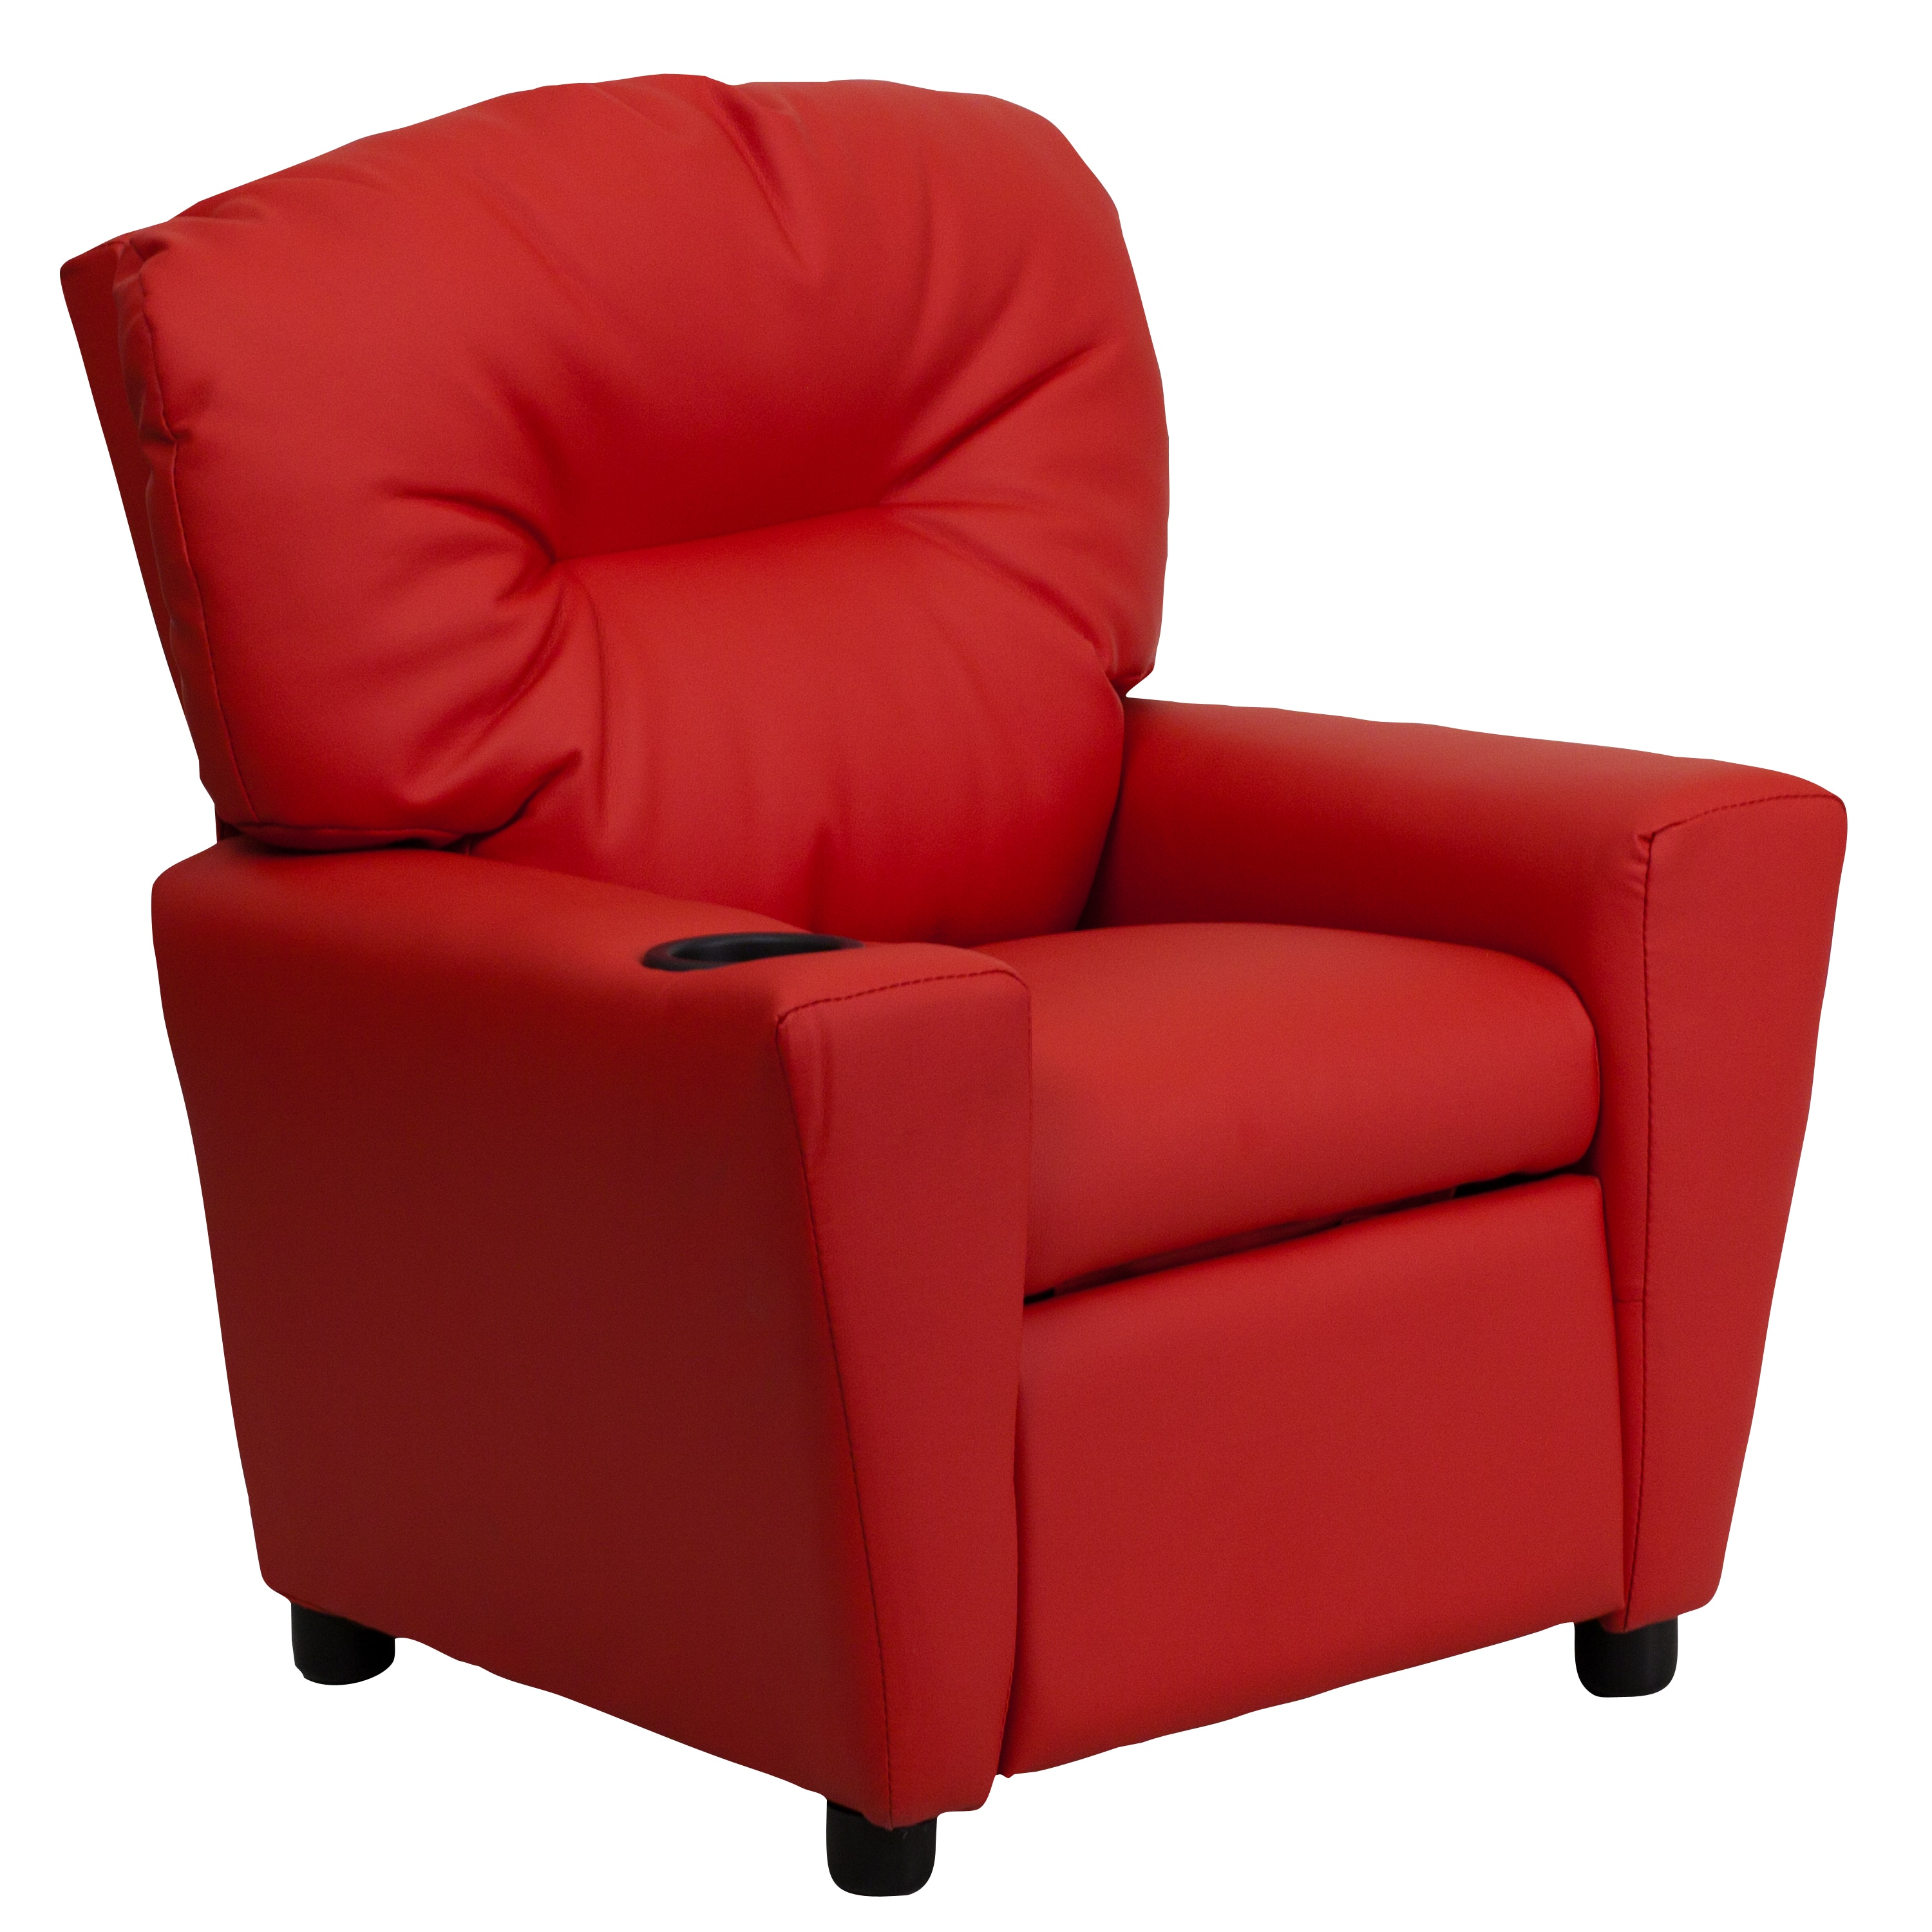 Red vinyl kids recliner cup holder furniture home chair for Kids overstuffed chair